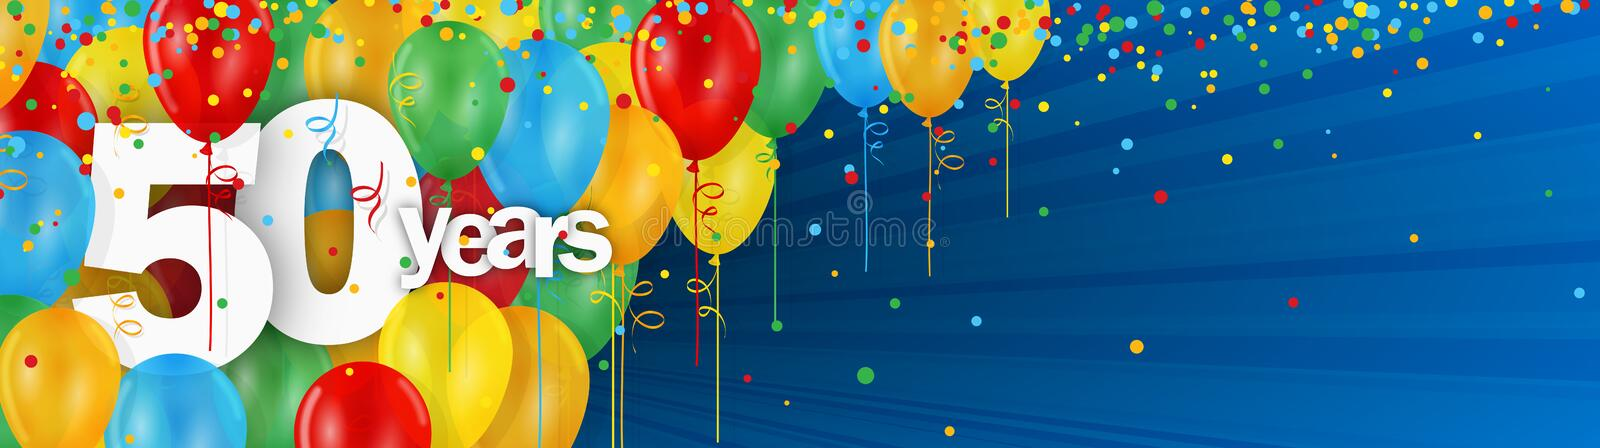 50 Years banner card with colorful balloons and confetti vector illustration